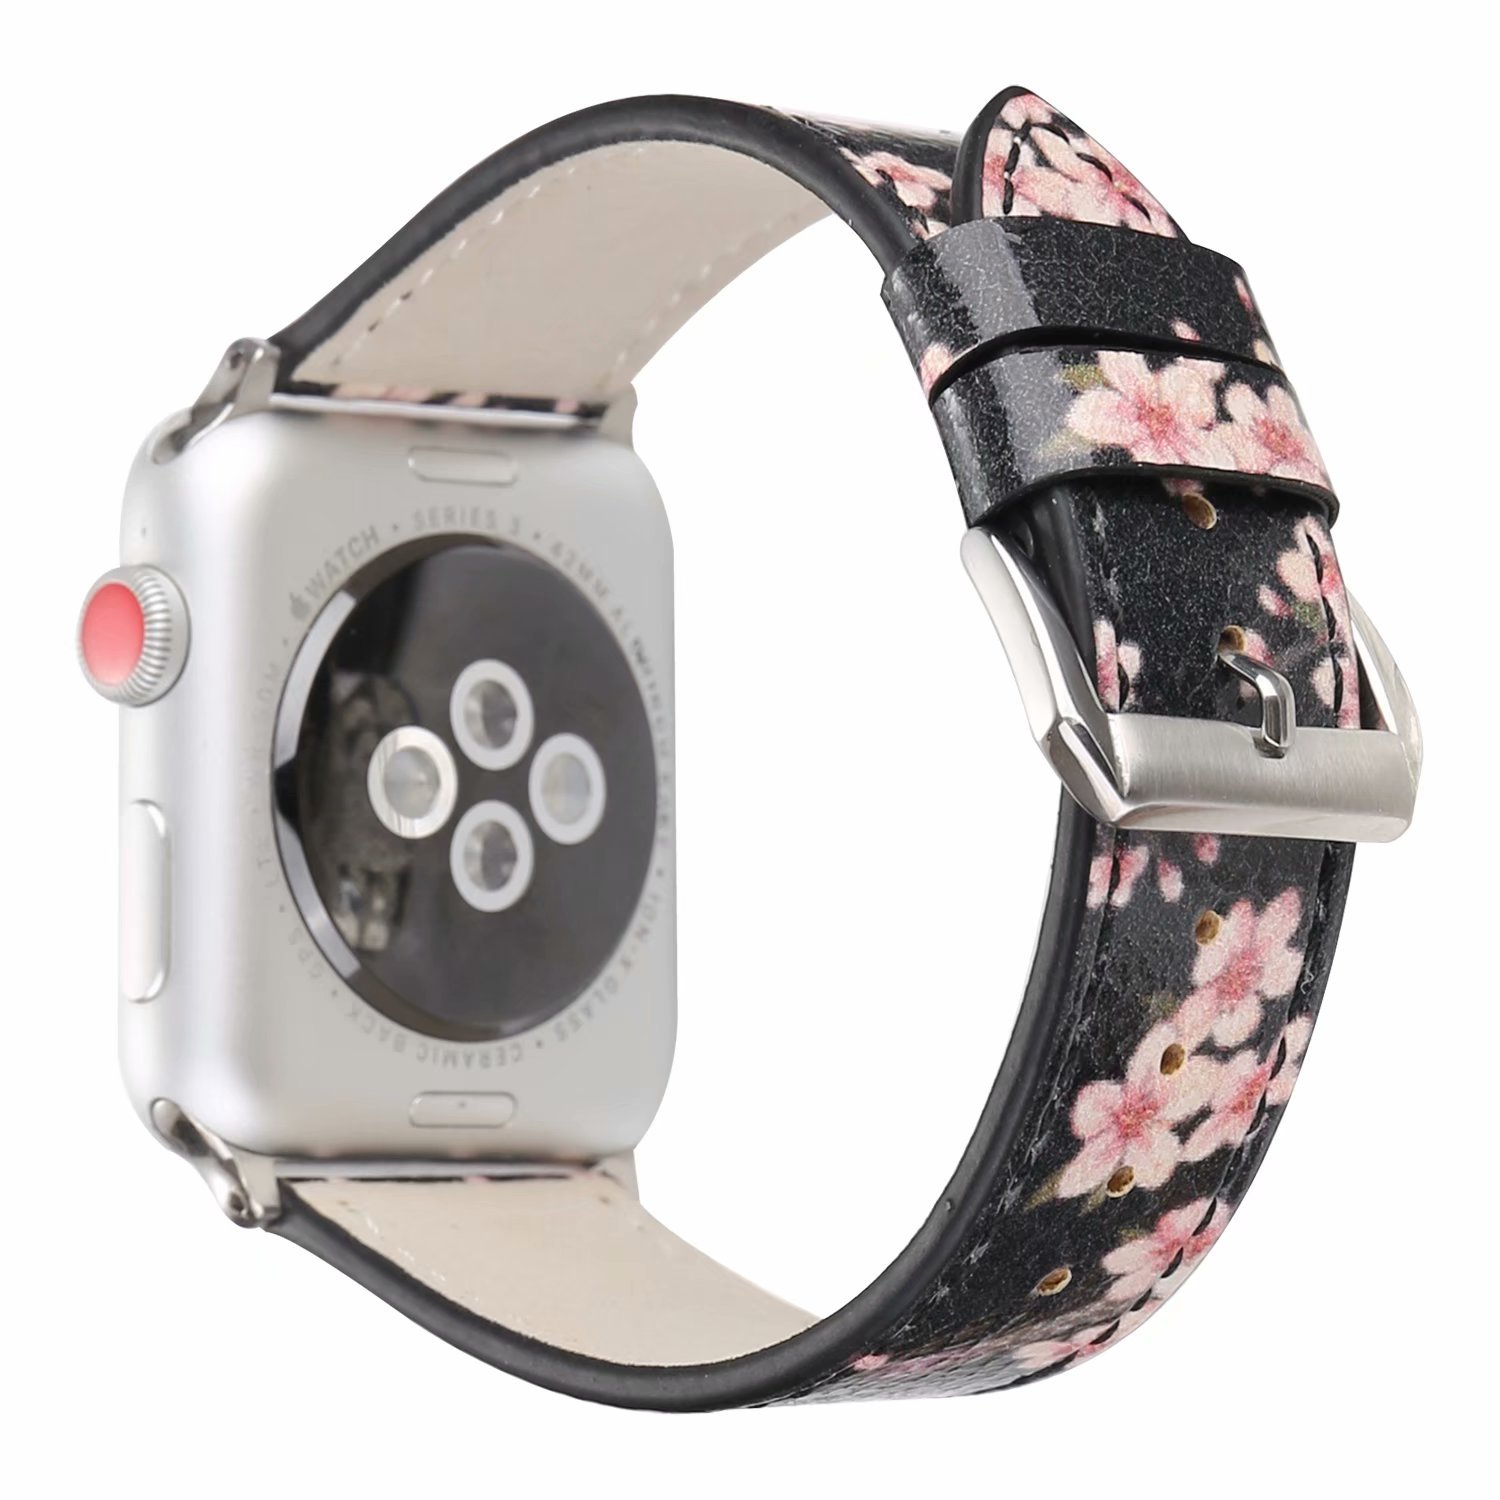 Women Girls Floral Plum Blossom Print Watch Strap Band Bracelet Replacement Compatible With Apple Watch Series 3, Series 2, Series 1